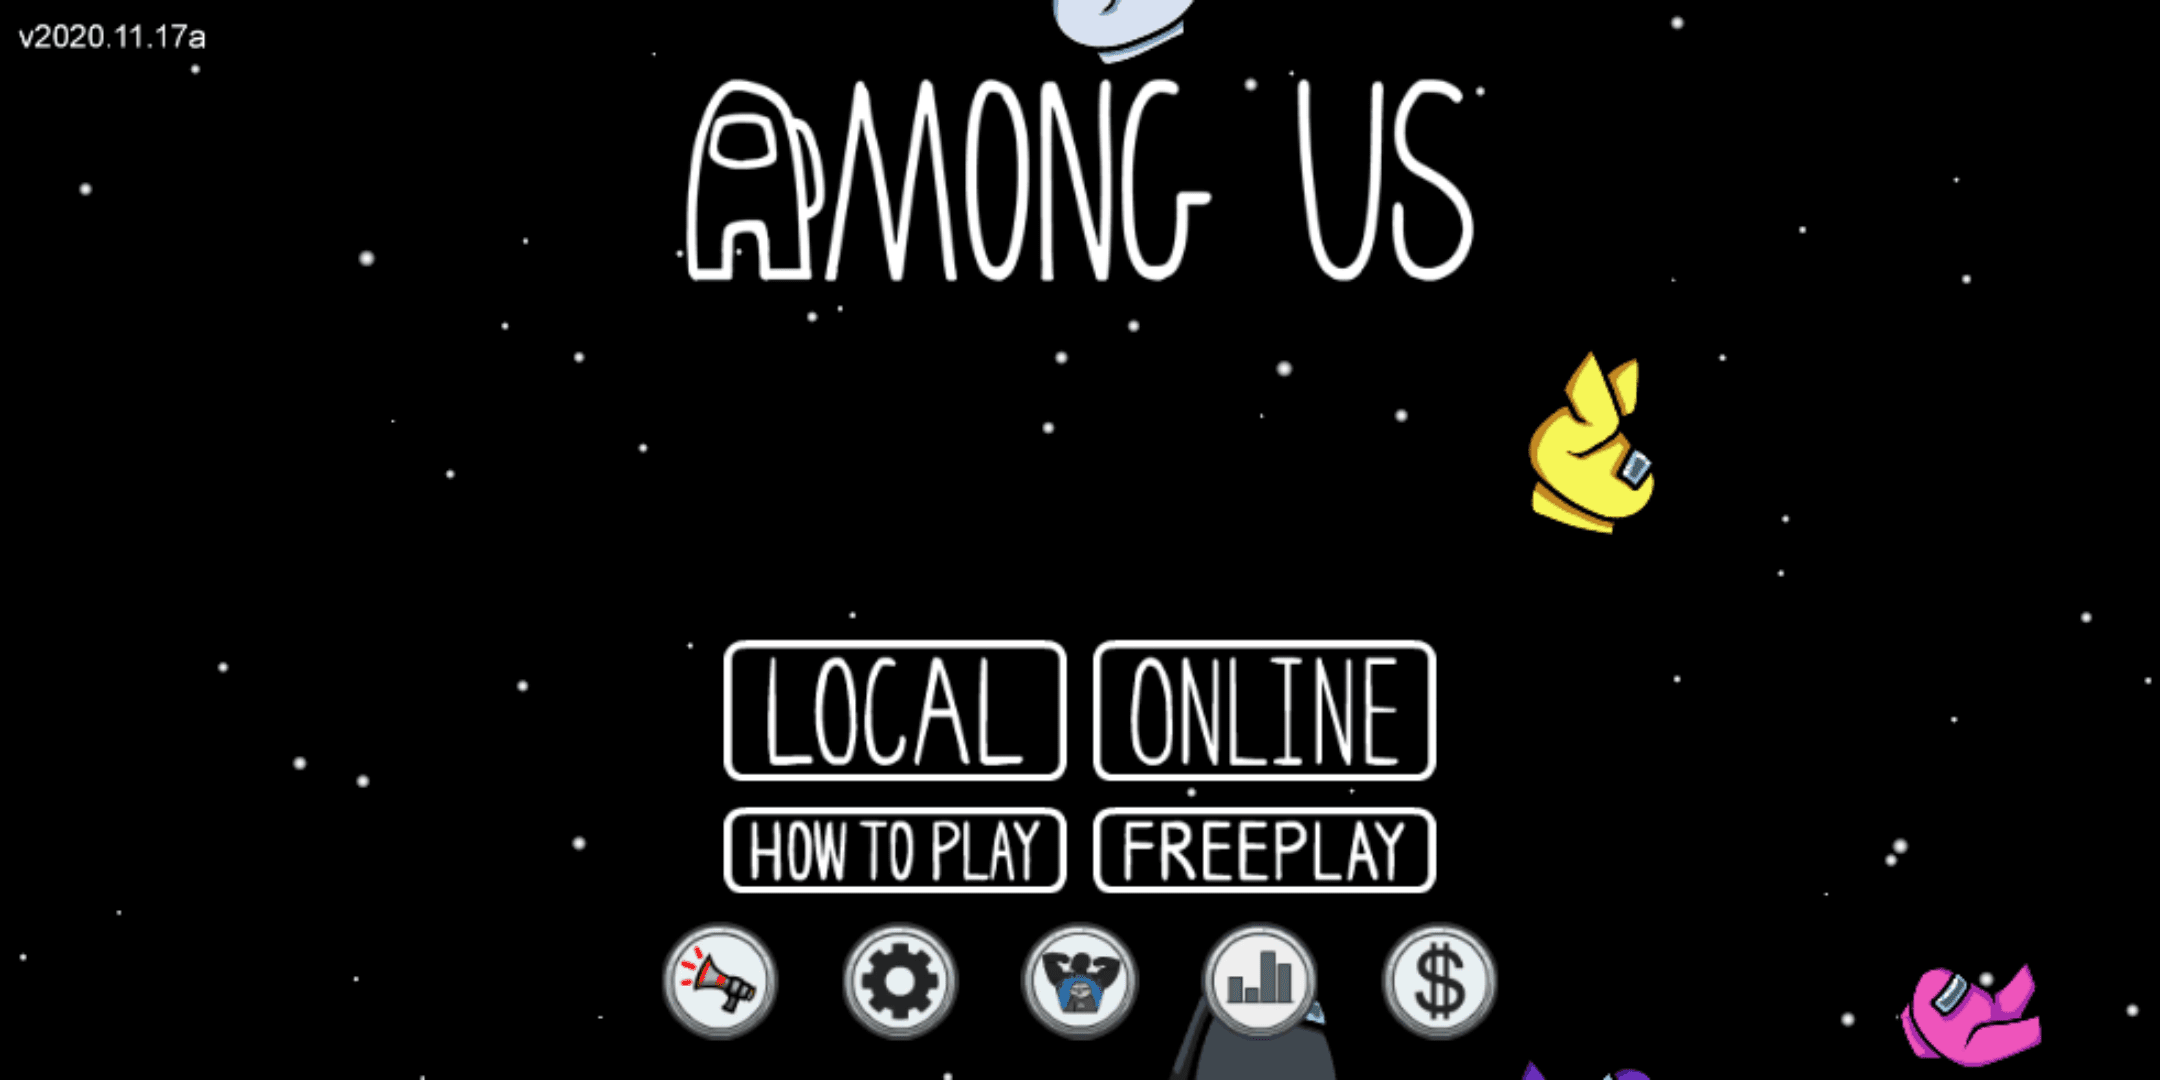 The Among Us title screen.